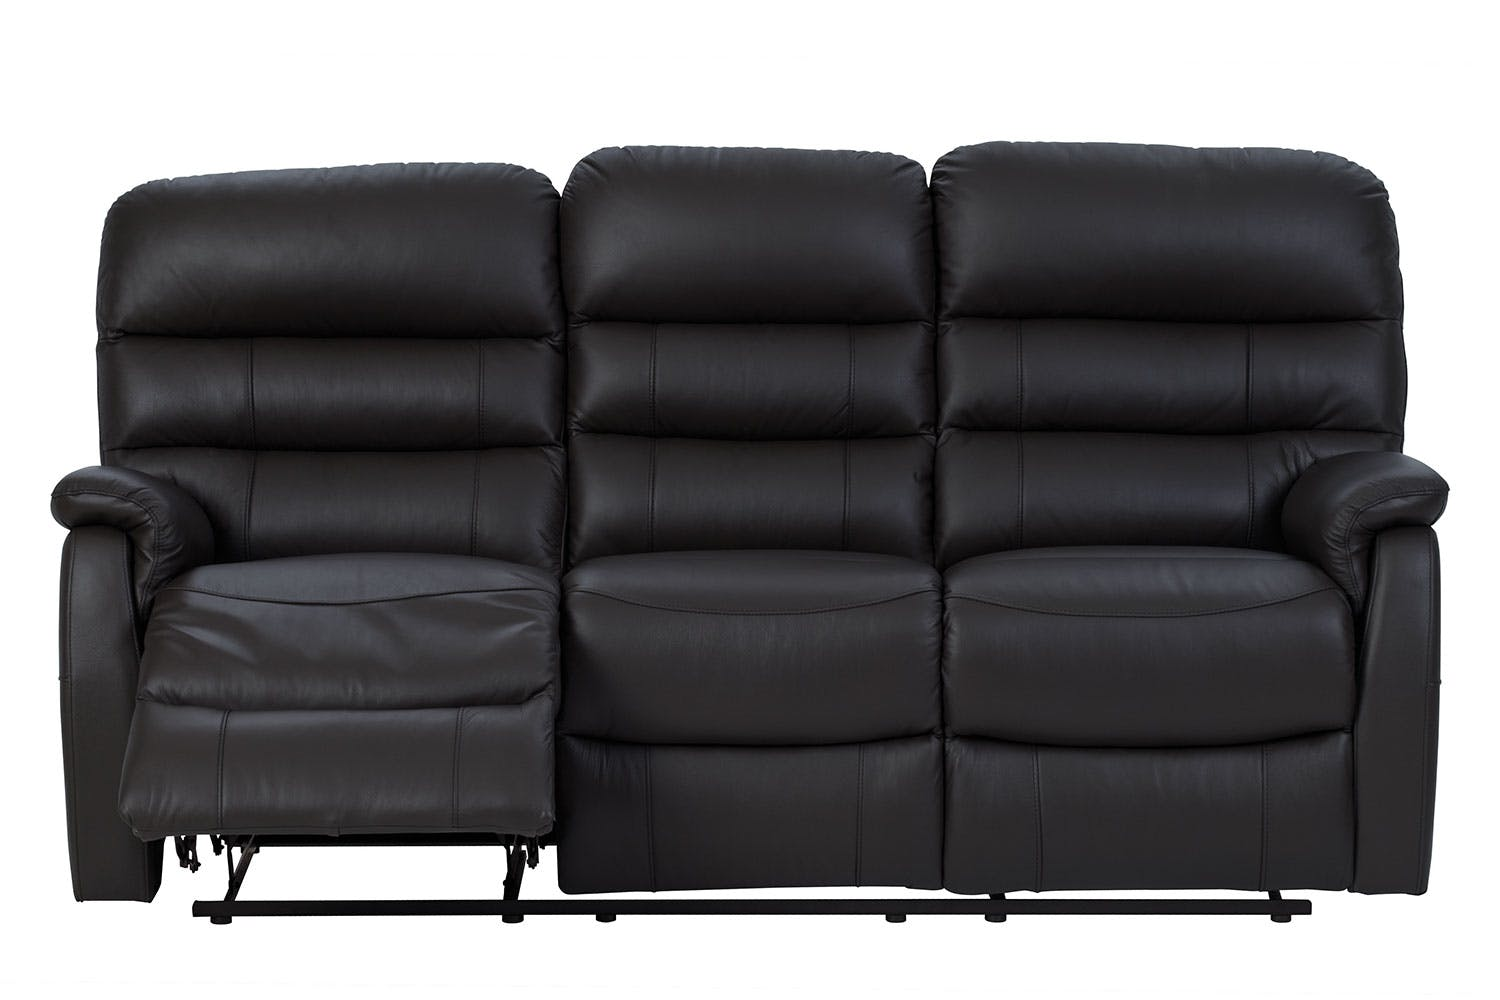 Luna 3 Seater Leather Recliner Sofa By